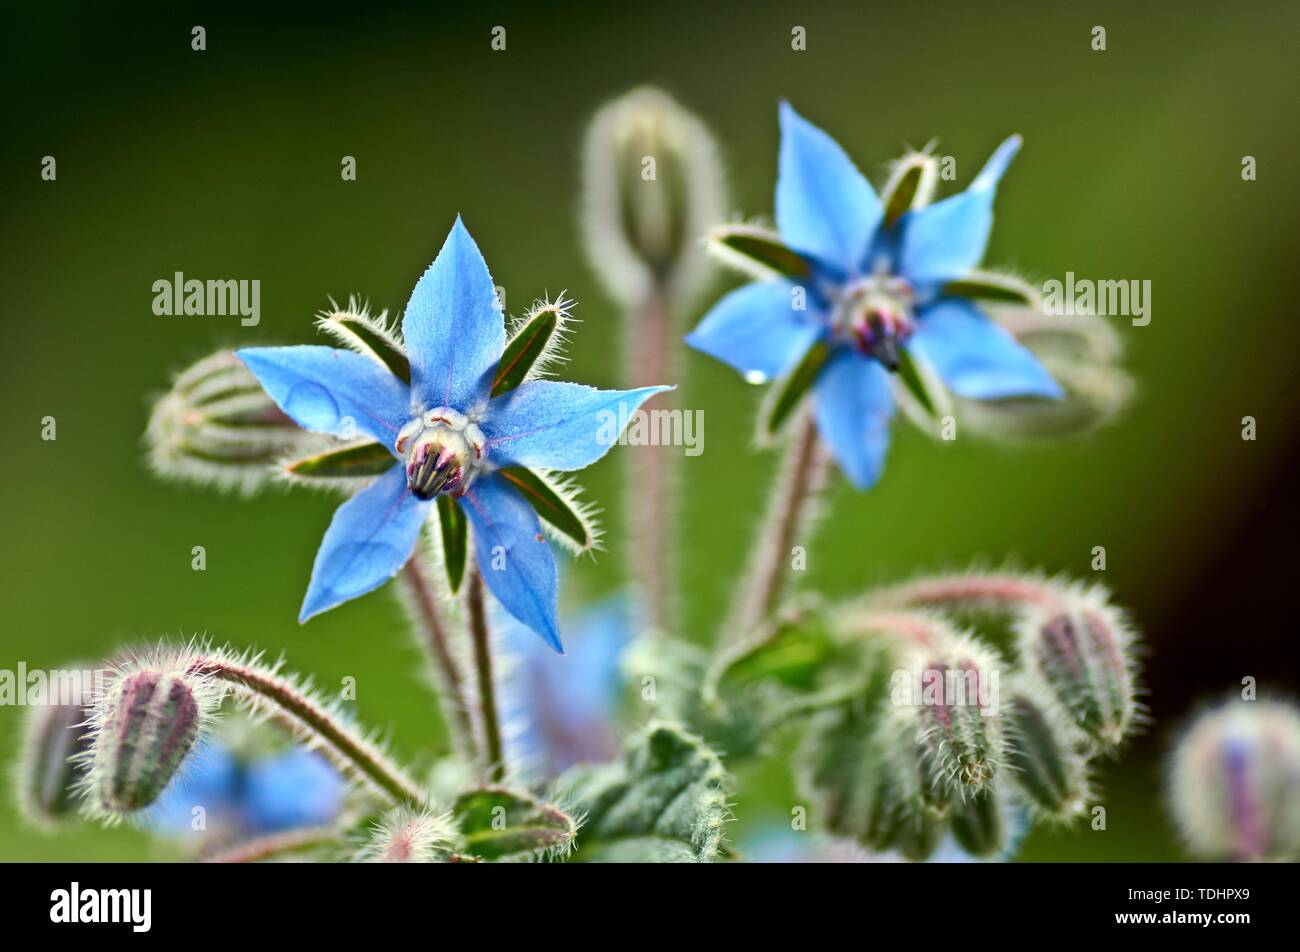 Borage borago officinalis starflower edible flower with bright blue petals on natural green background - Stock Image